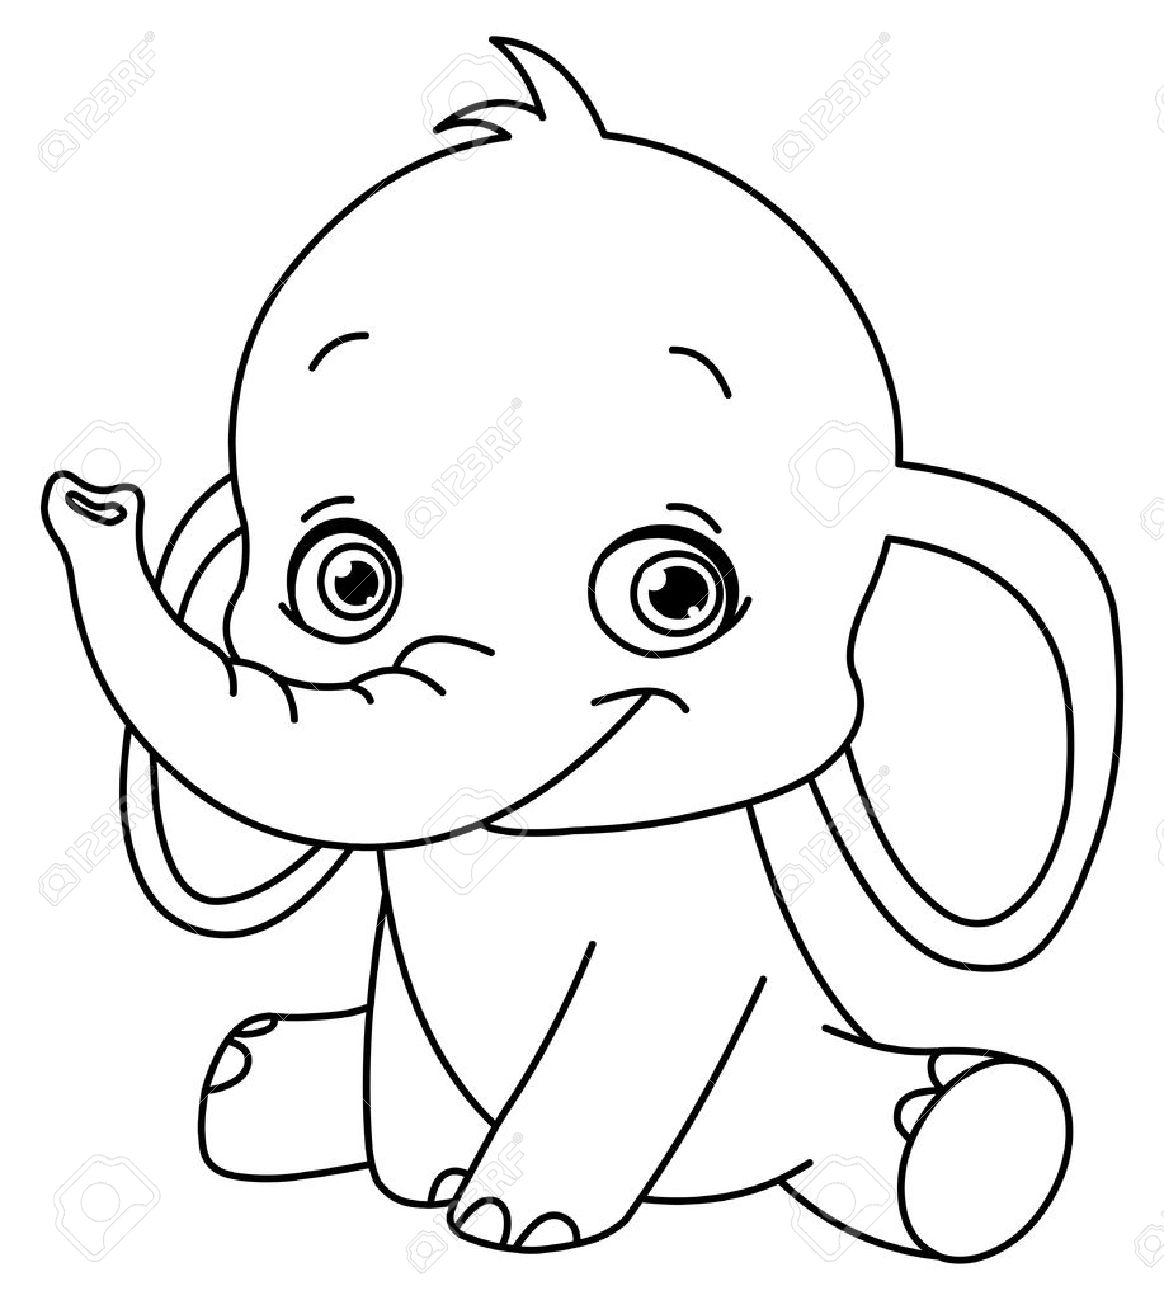 Baby elephant clipart outline png transparent stock elephant outline Elephant clipart outline trunk up clipartxtras jpeg ... png transparent stock